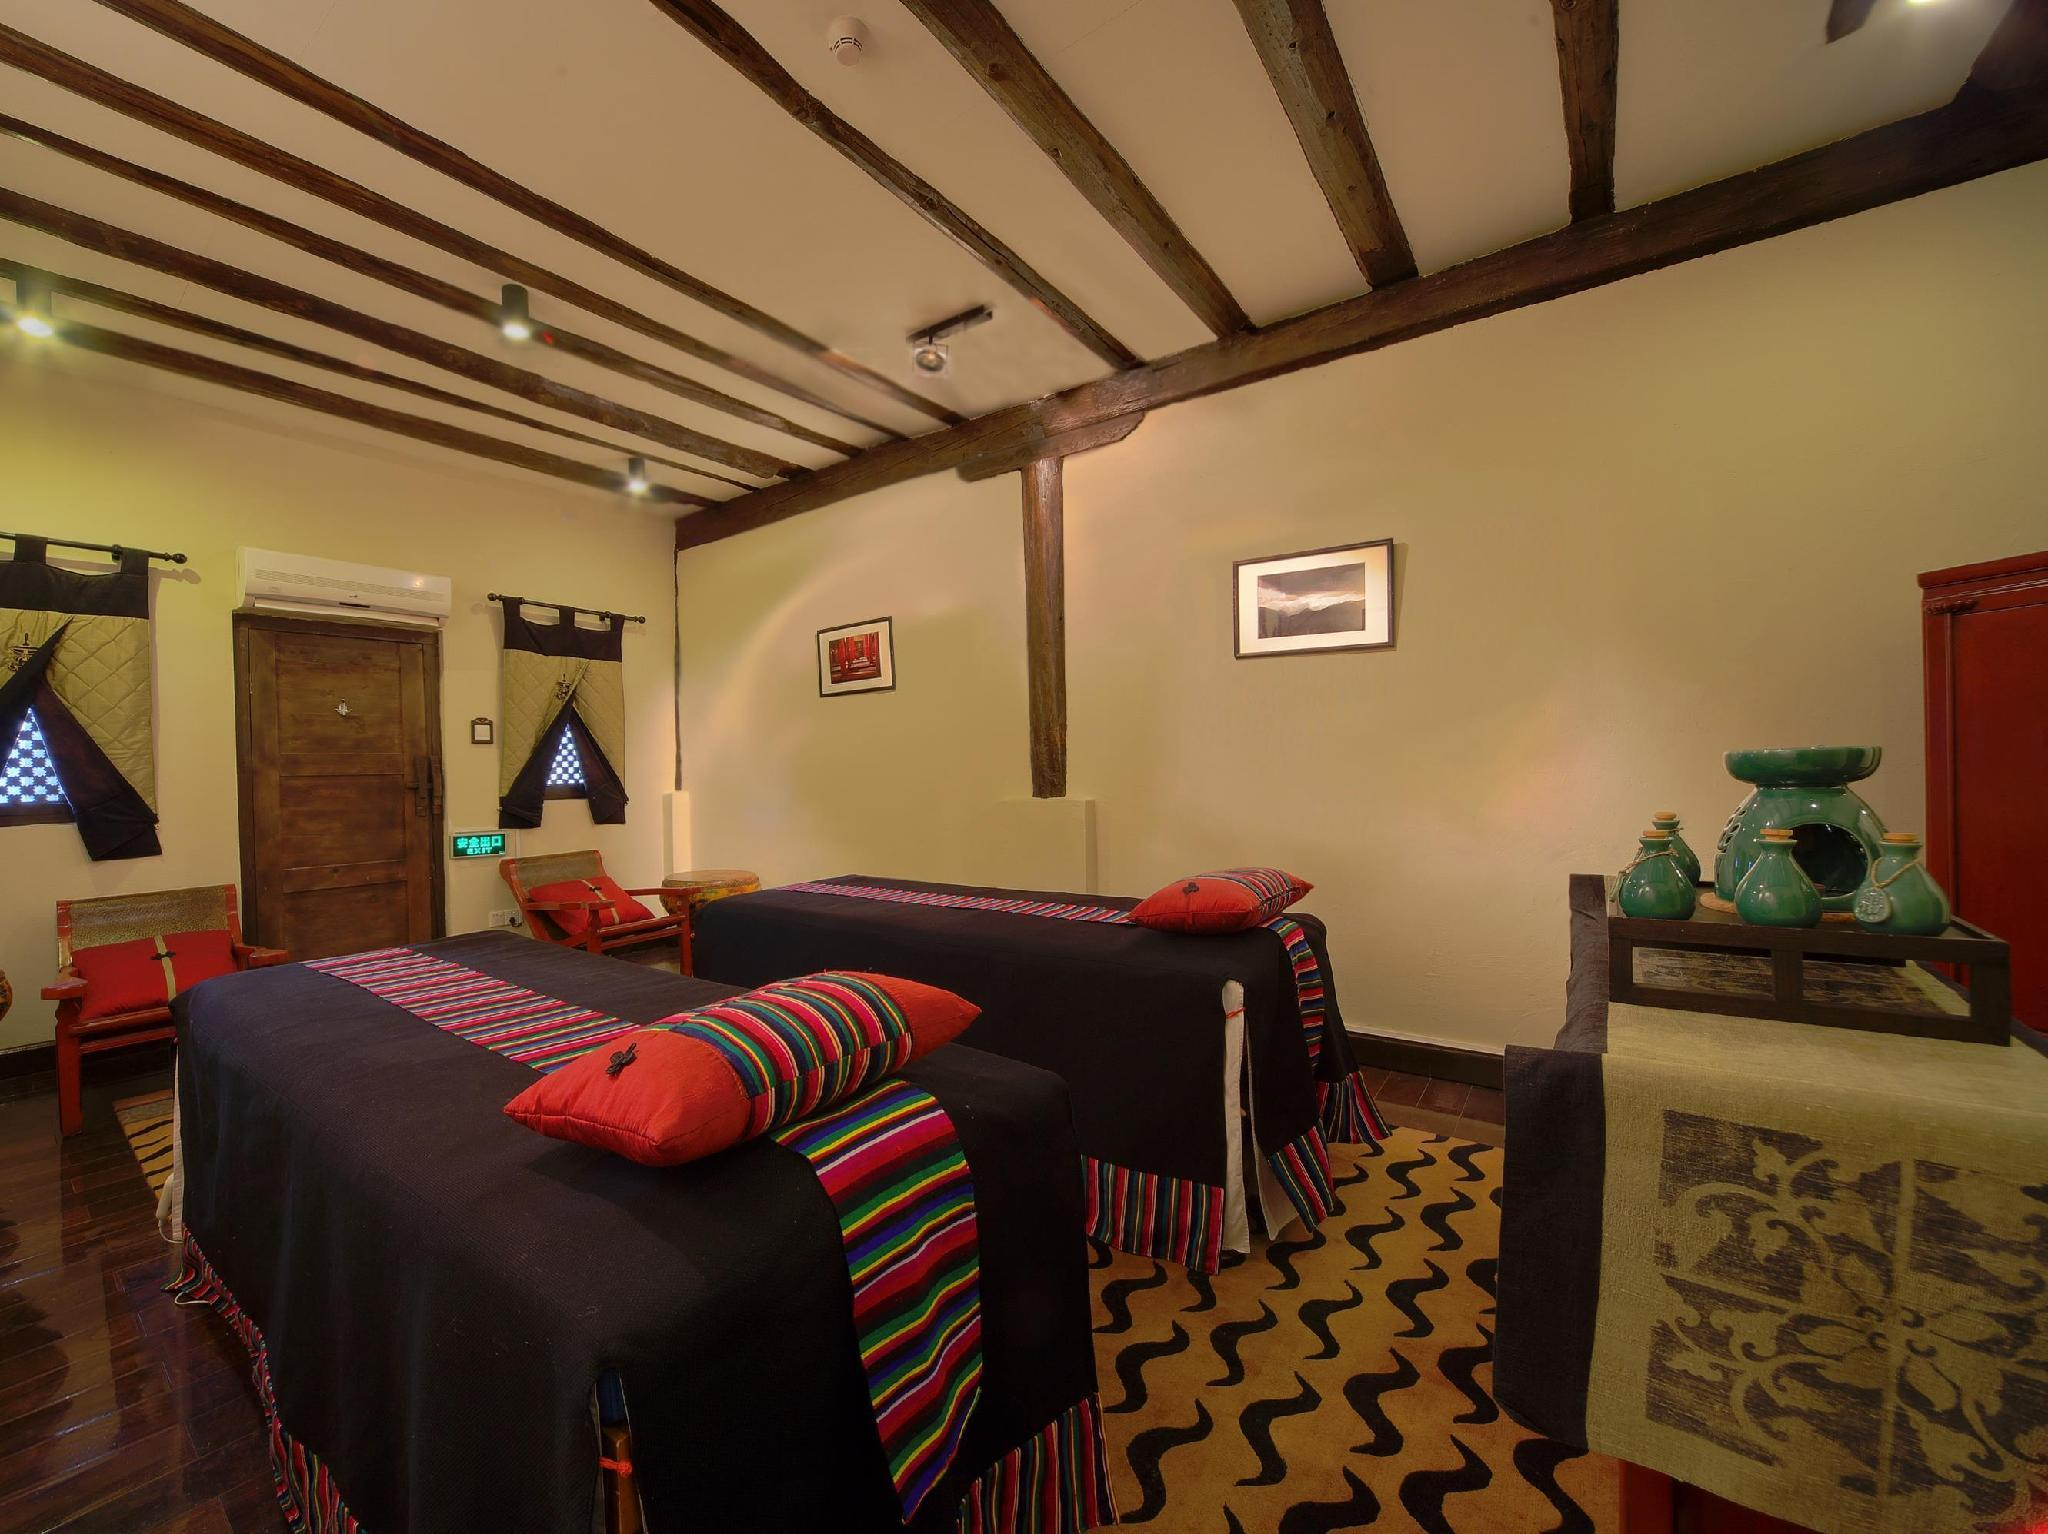 Suite Tibet Spa - Kamar Saja (Tibetan Spa Suite Room Only)